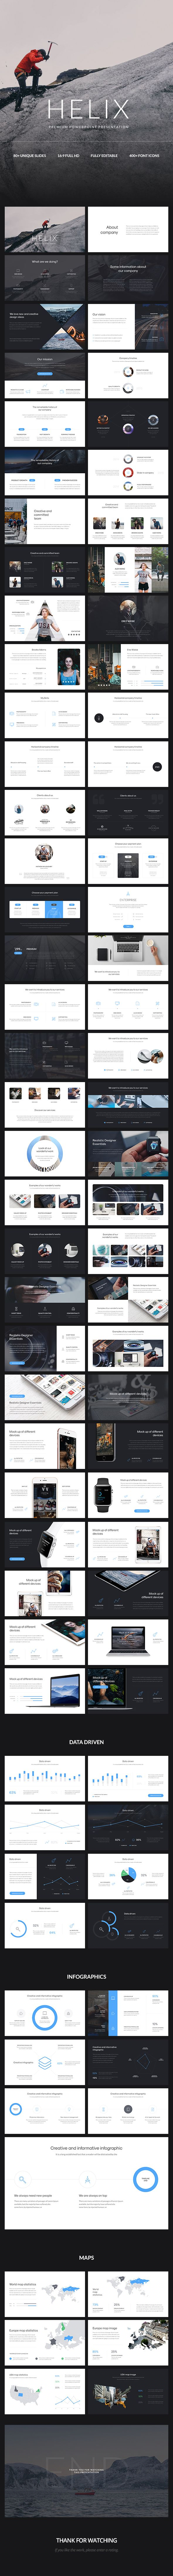 Helix PowerPoint Presentation Template. Download here: http://graphicriver.net/item/helix-powerpoint-presentation/15473833?ref=ksioks